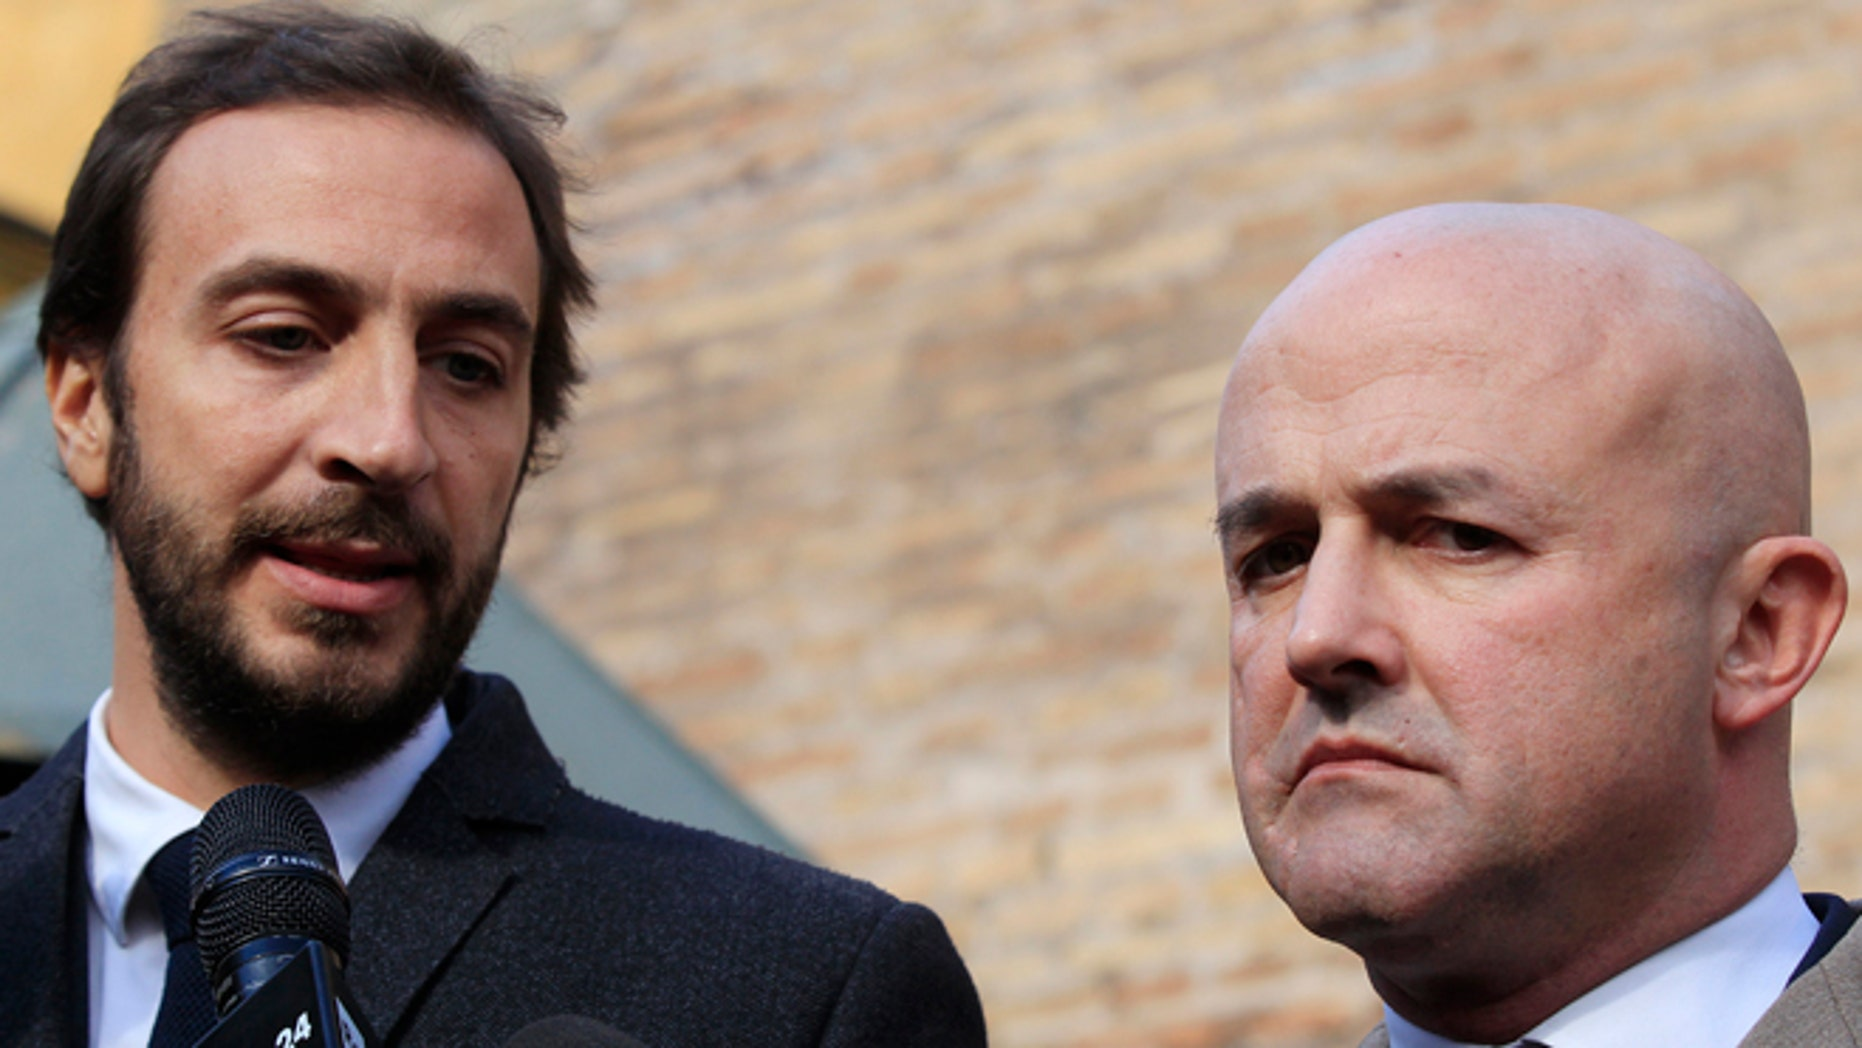 Italian journalists Gianluigi Nuzzi, right, and Emiliano Fittipaldi, talk to reporters outside the Vatican City at the Perugino gate, Tuesday, Nov. 24, 2015. The two Italian journalists who wrote books detailing Vatican mismanagement faced trial on Tuesday in a Vatican courtroom along with three people accused of leaking them the information in a case that has drawn scorn from media watchdogs. (AP Photo/Gregorio Borgia)